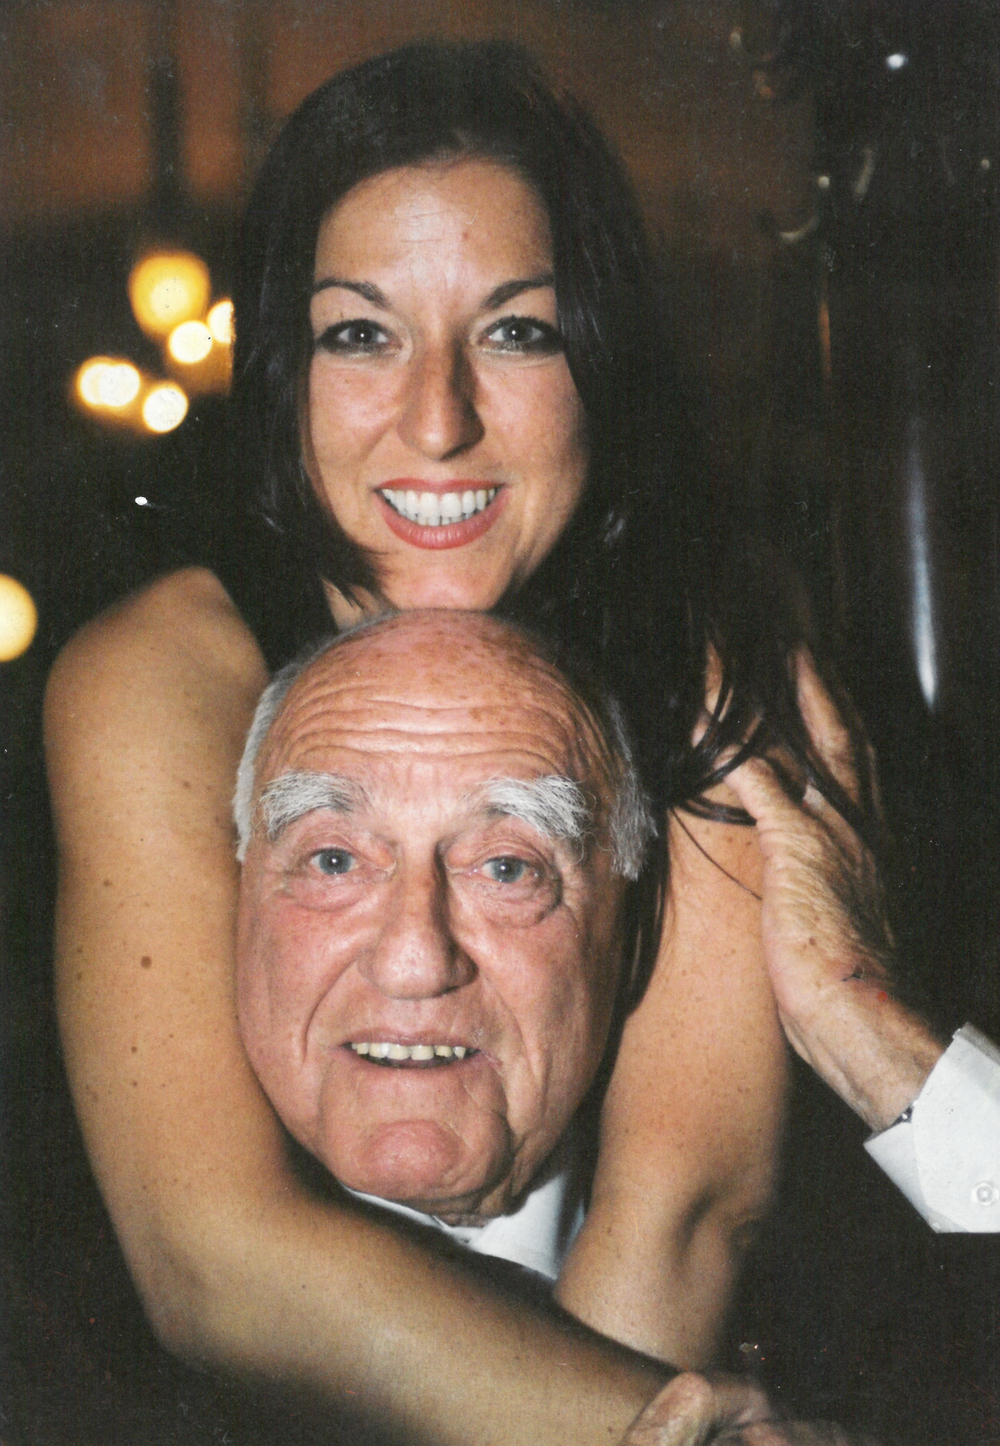 Hanna Lessing and her father Erich, 2001 © privat